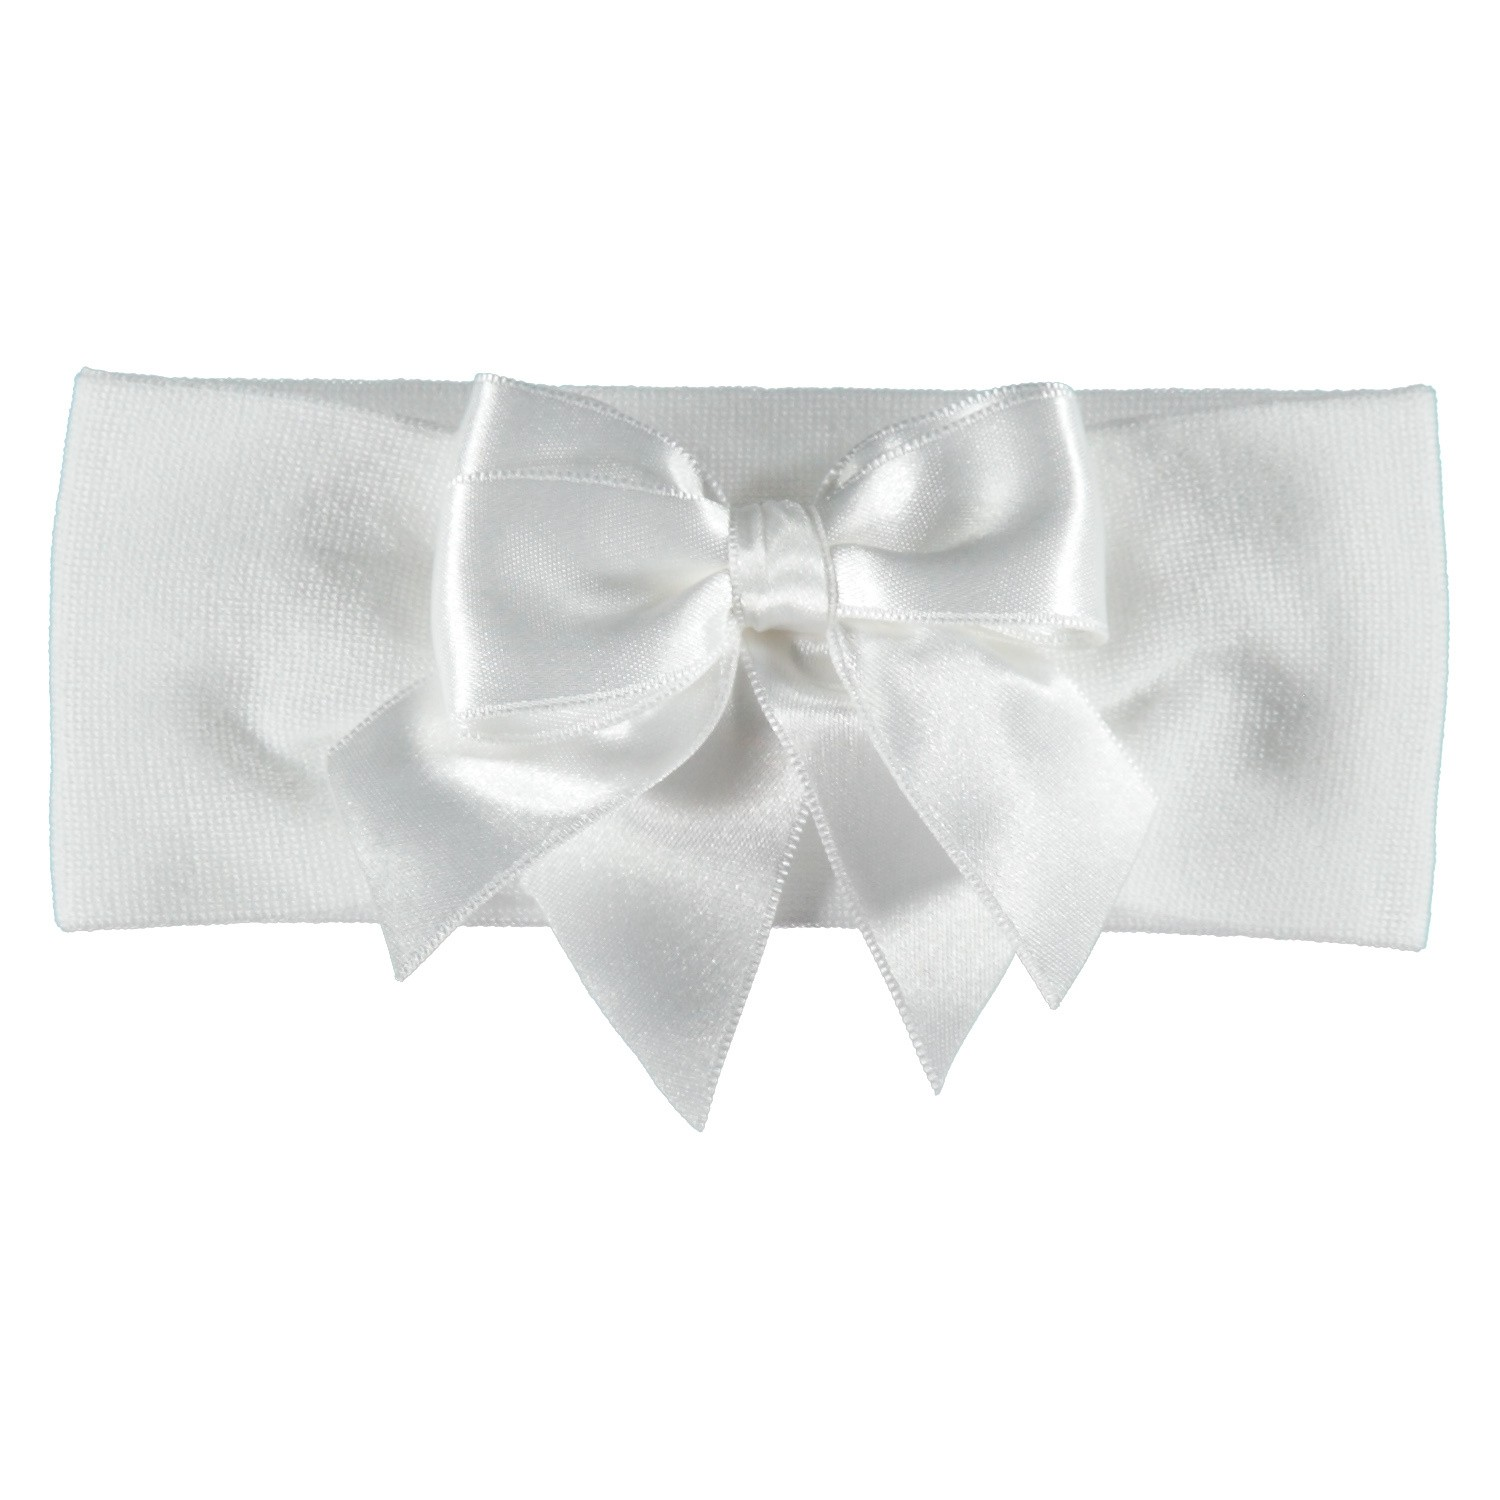 Picture of La Perla 40983 baby accessory white